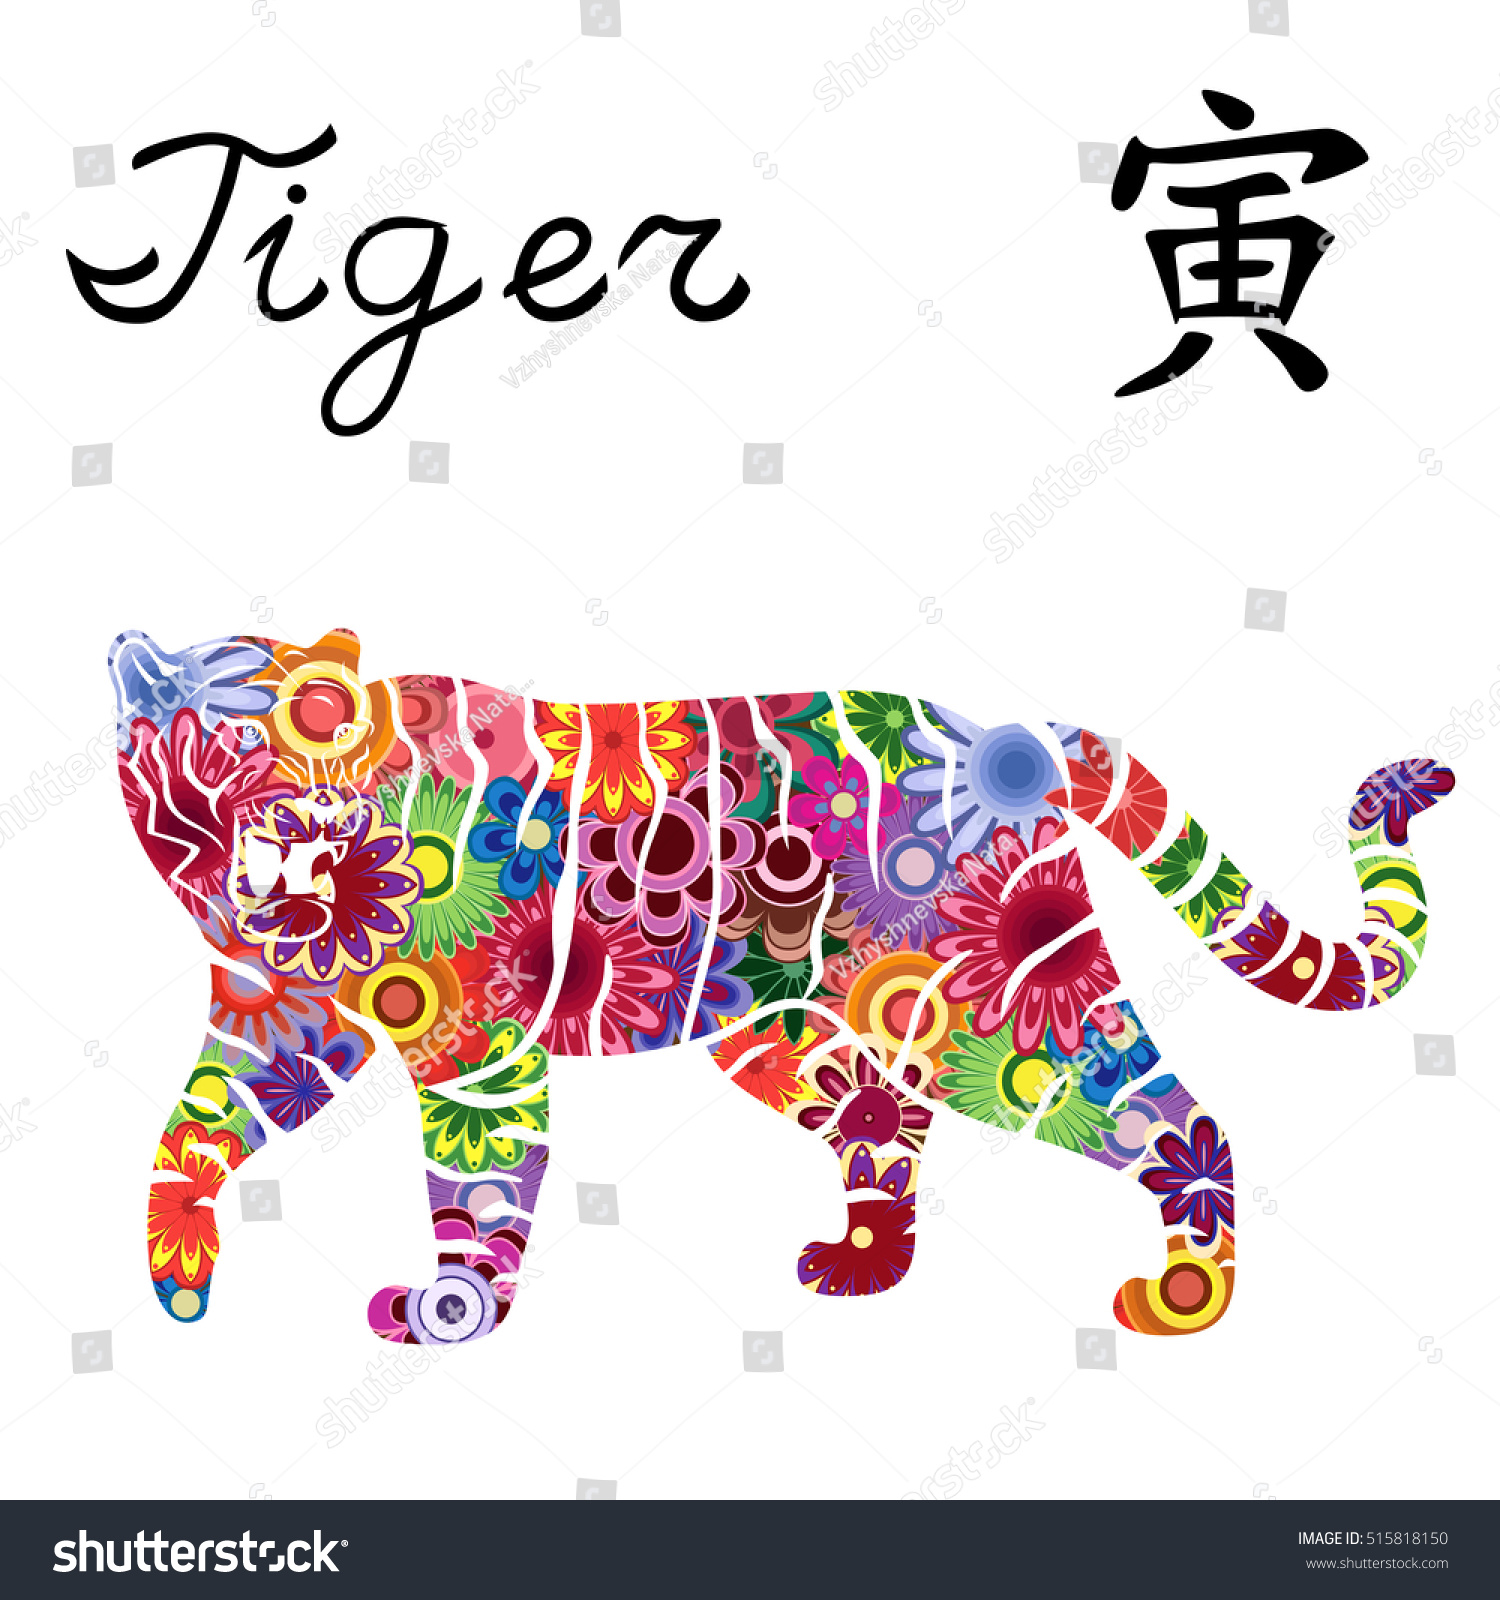 Elephant chinese symbol images symbol and sign ideas chinese zodiac sign tiger fixed element stock illustration chinese zodiac sign tiger fixed element wood symbol buycottarizona Images